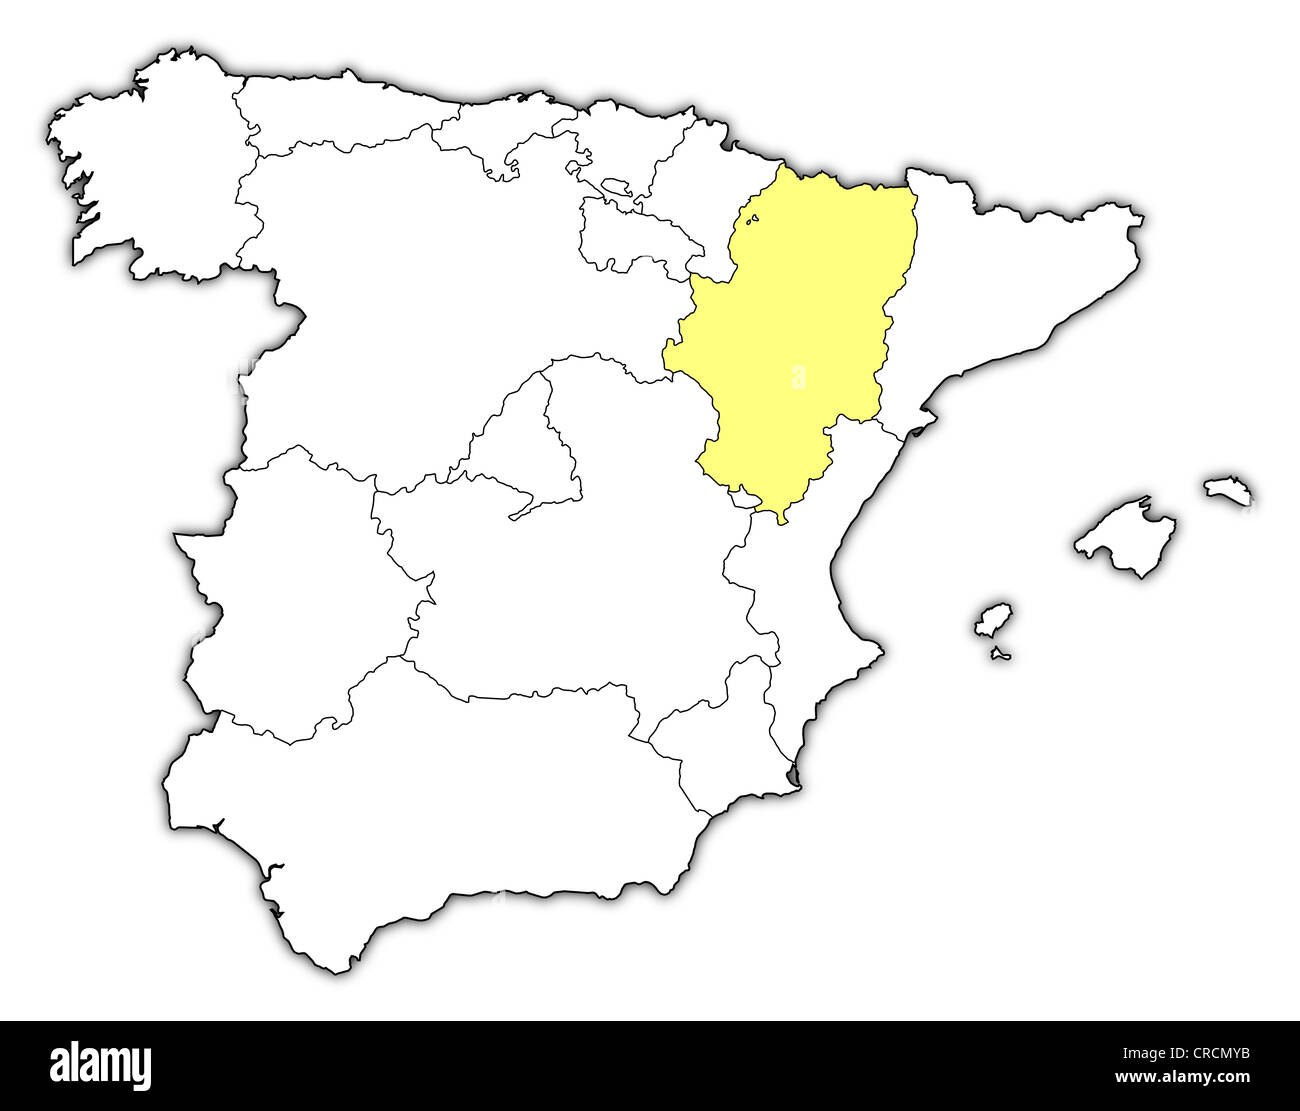 aragon outline stock photos aragon outline stock images alamy China Country Outline political map of spain with the several regions where aragon is highlighted stock image